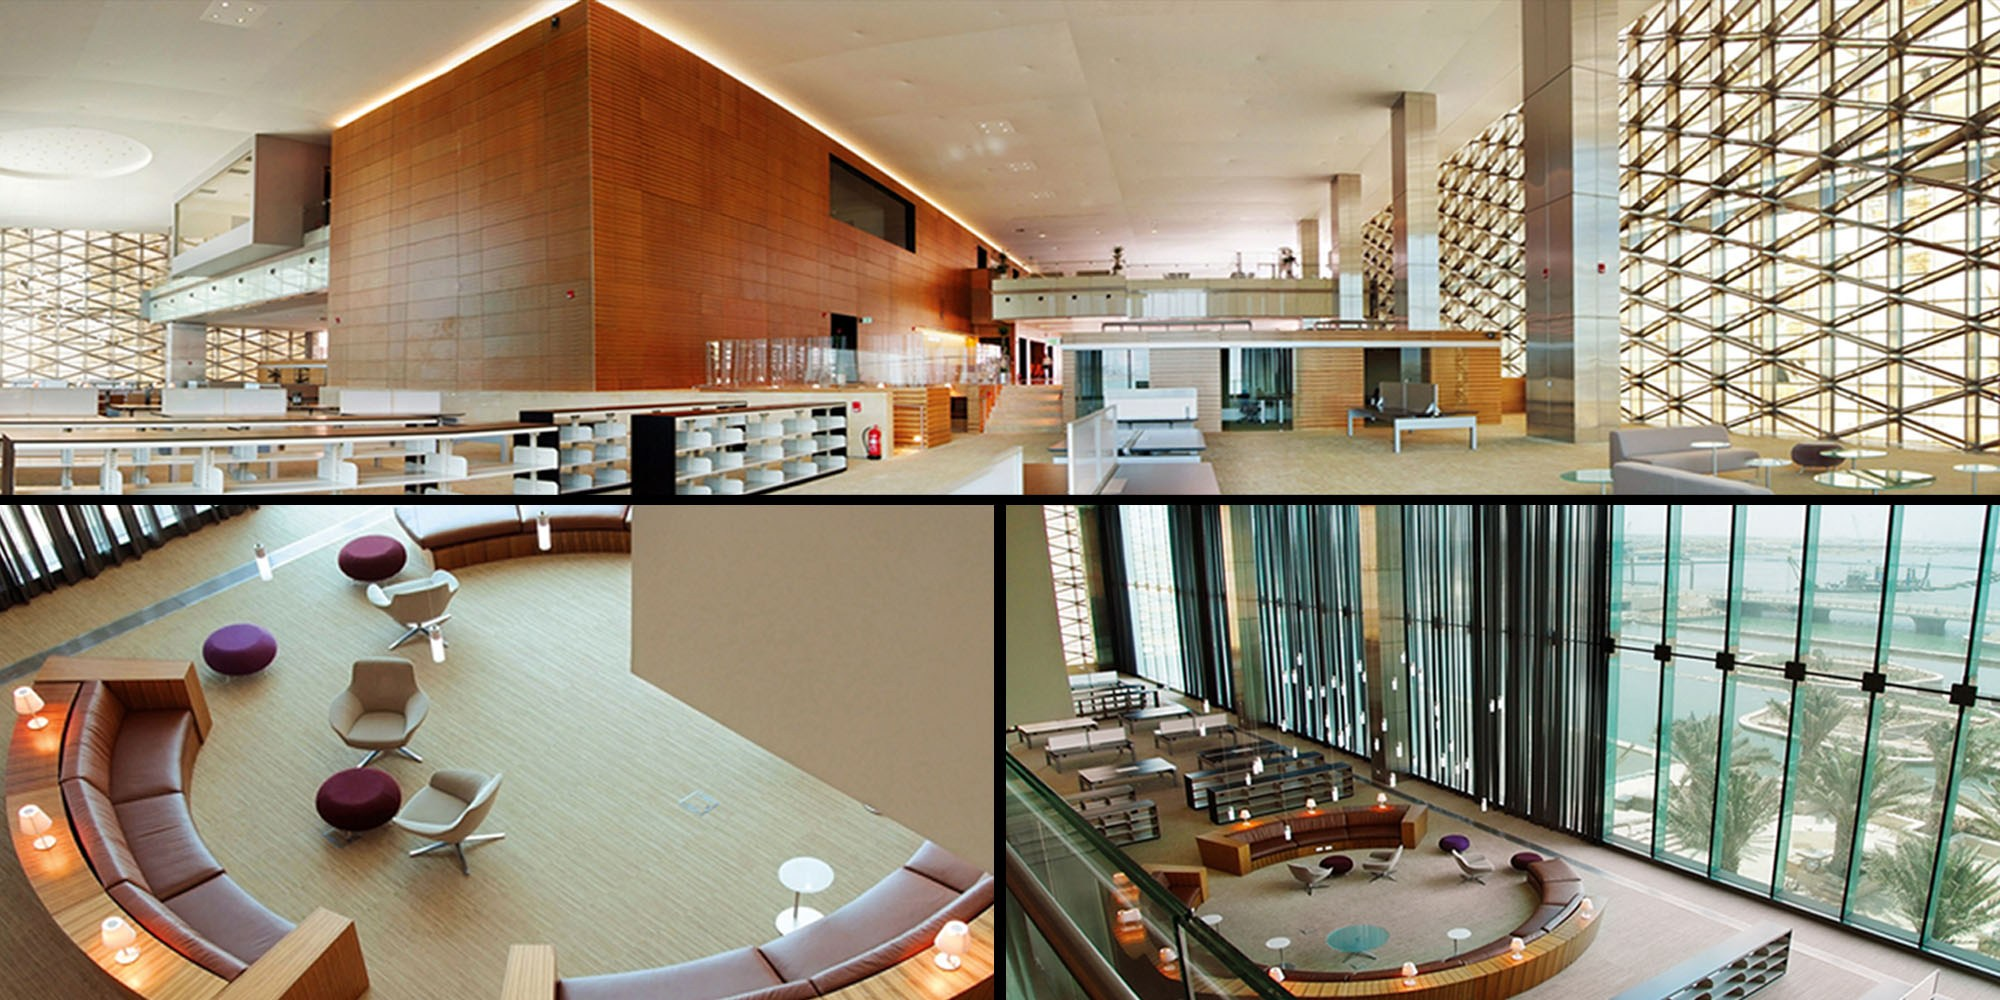 <p>King abdullah University for Science and Technology - KAUST</p>